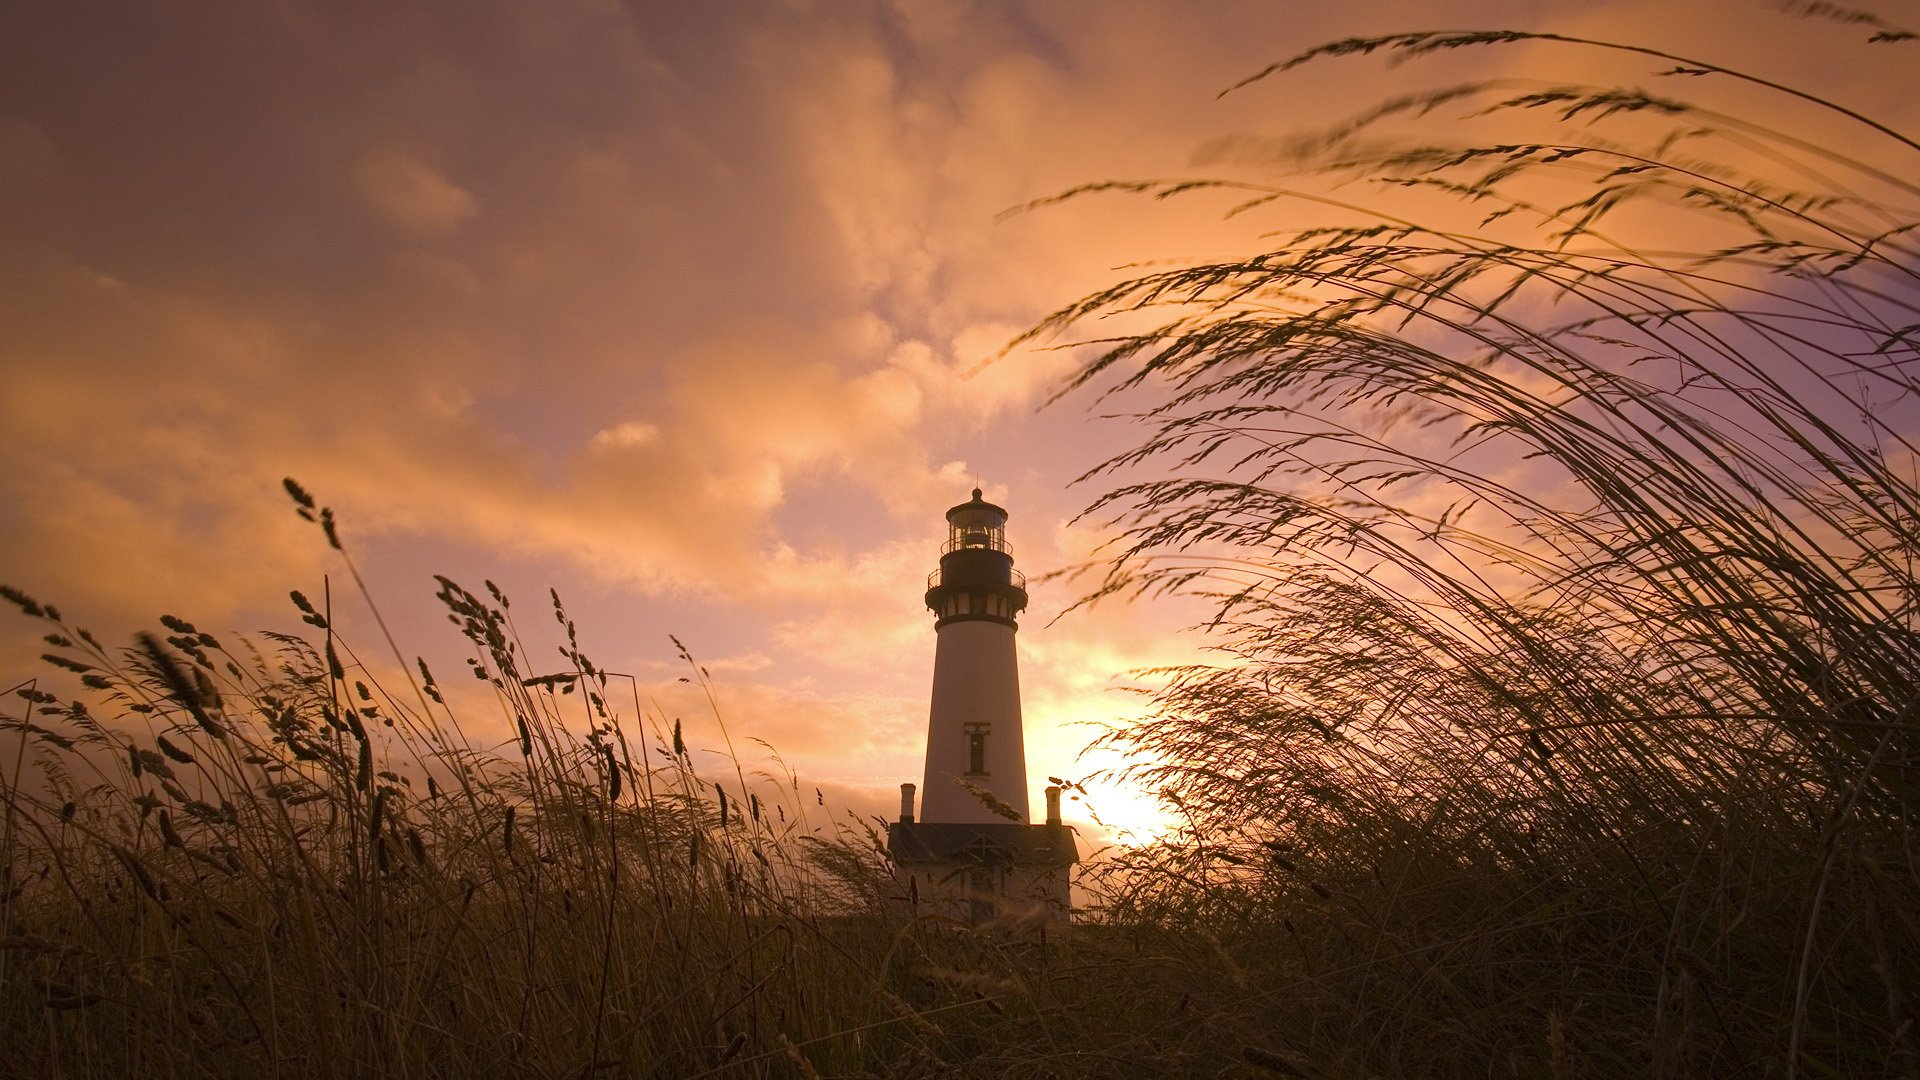 Man Made - Lighthouse  Sunrise Sunset Wallpaper